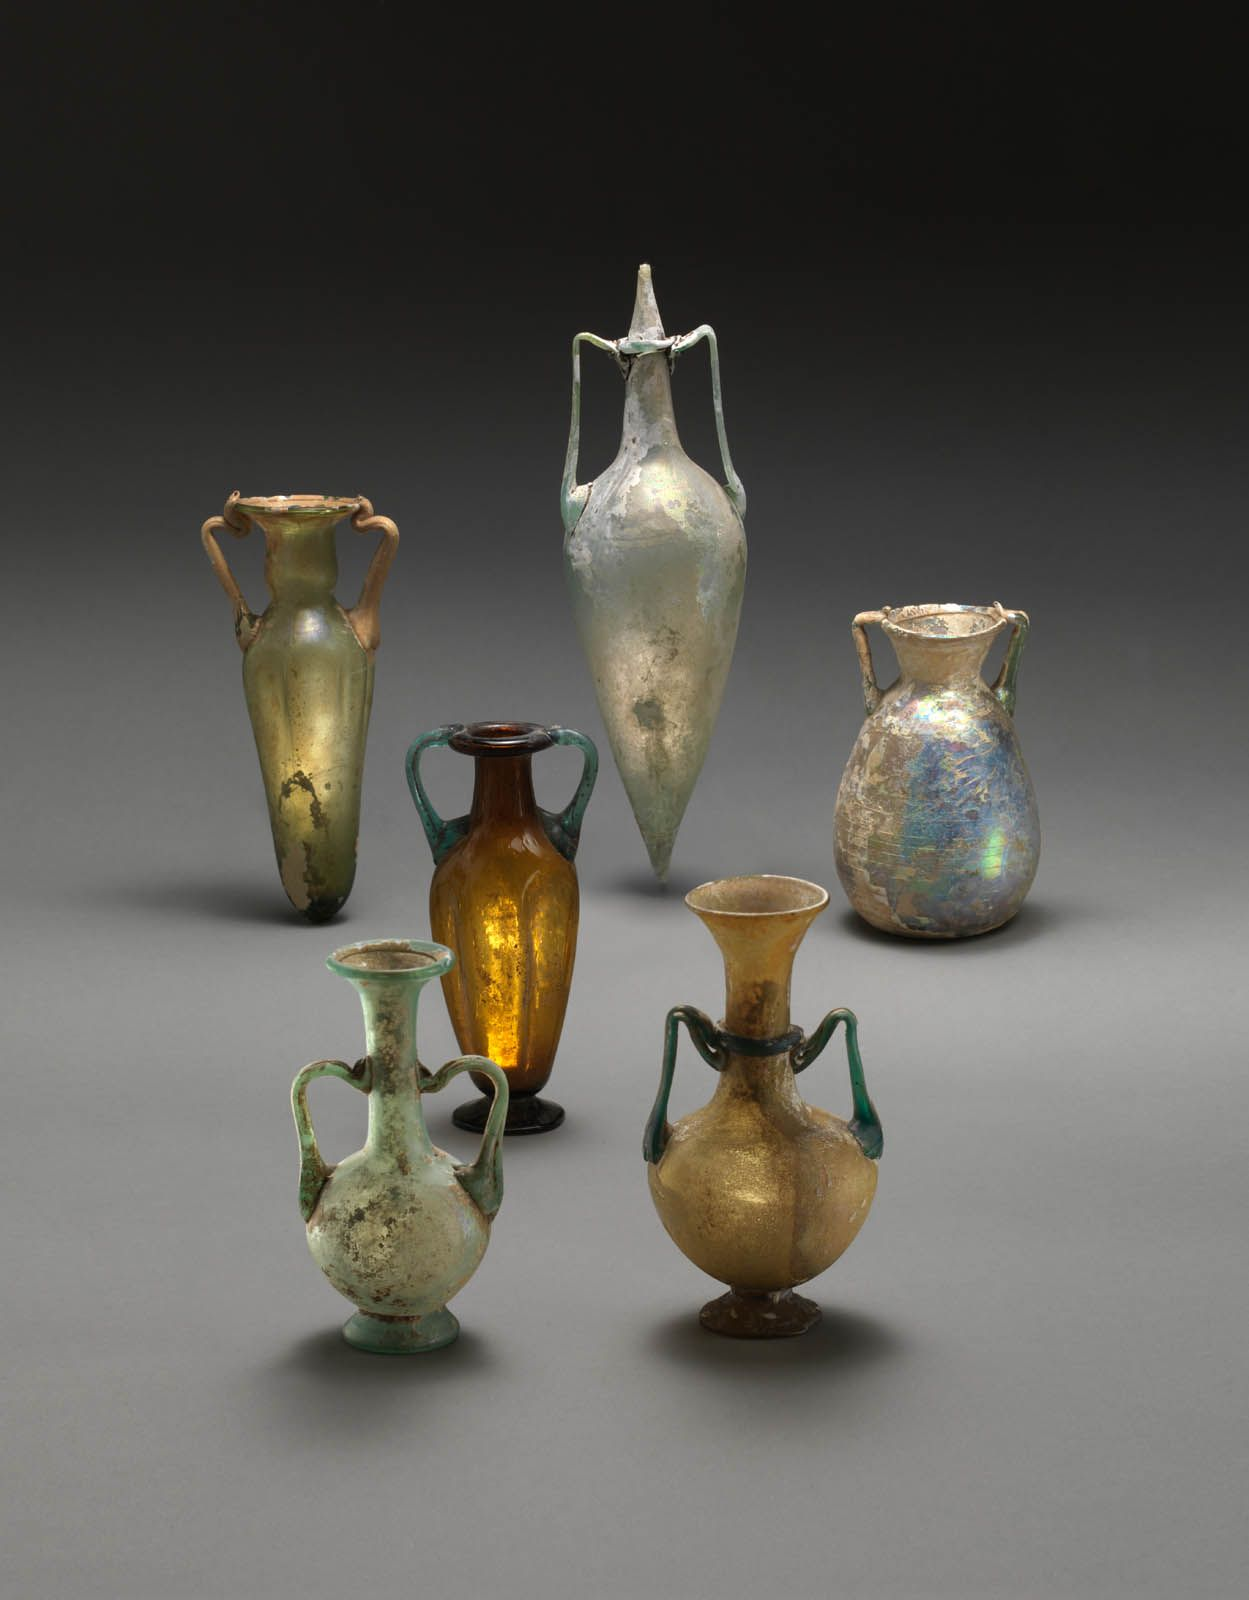 Ancient glass, Princeton University Art Museum